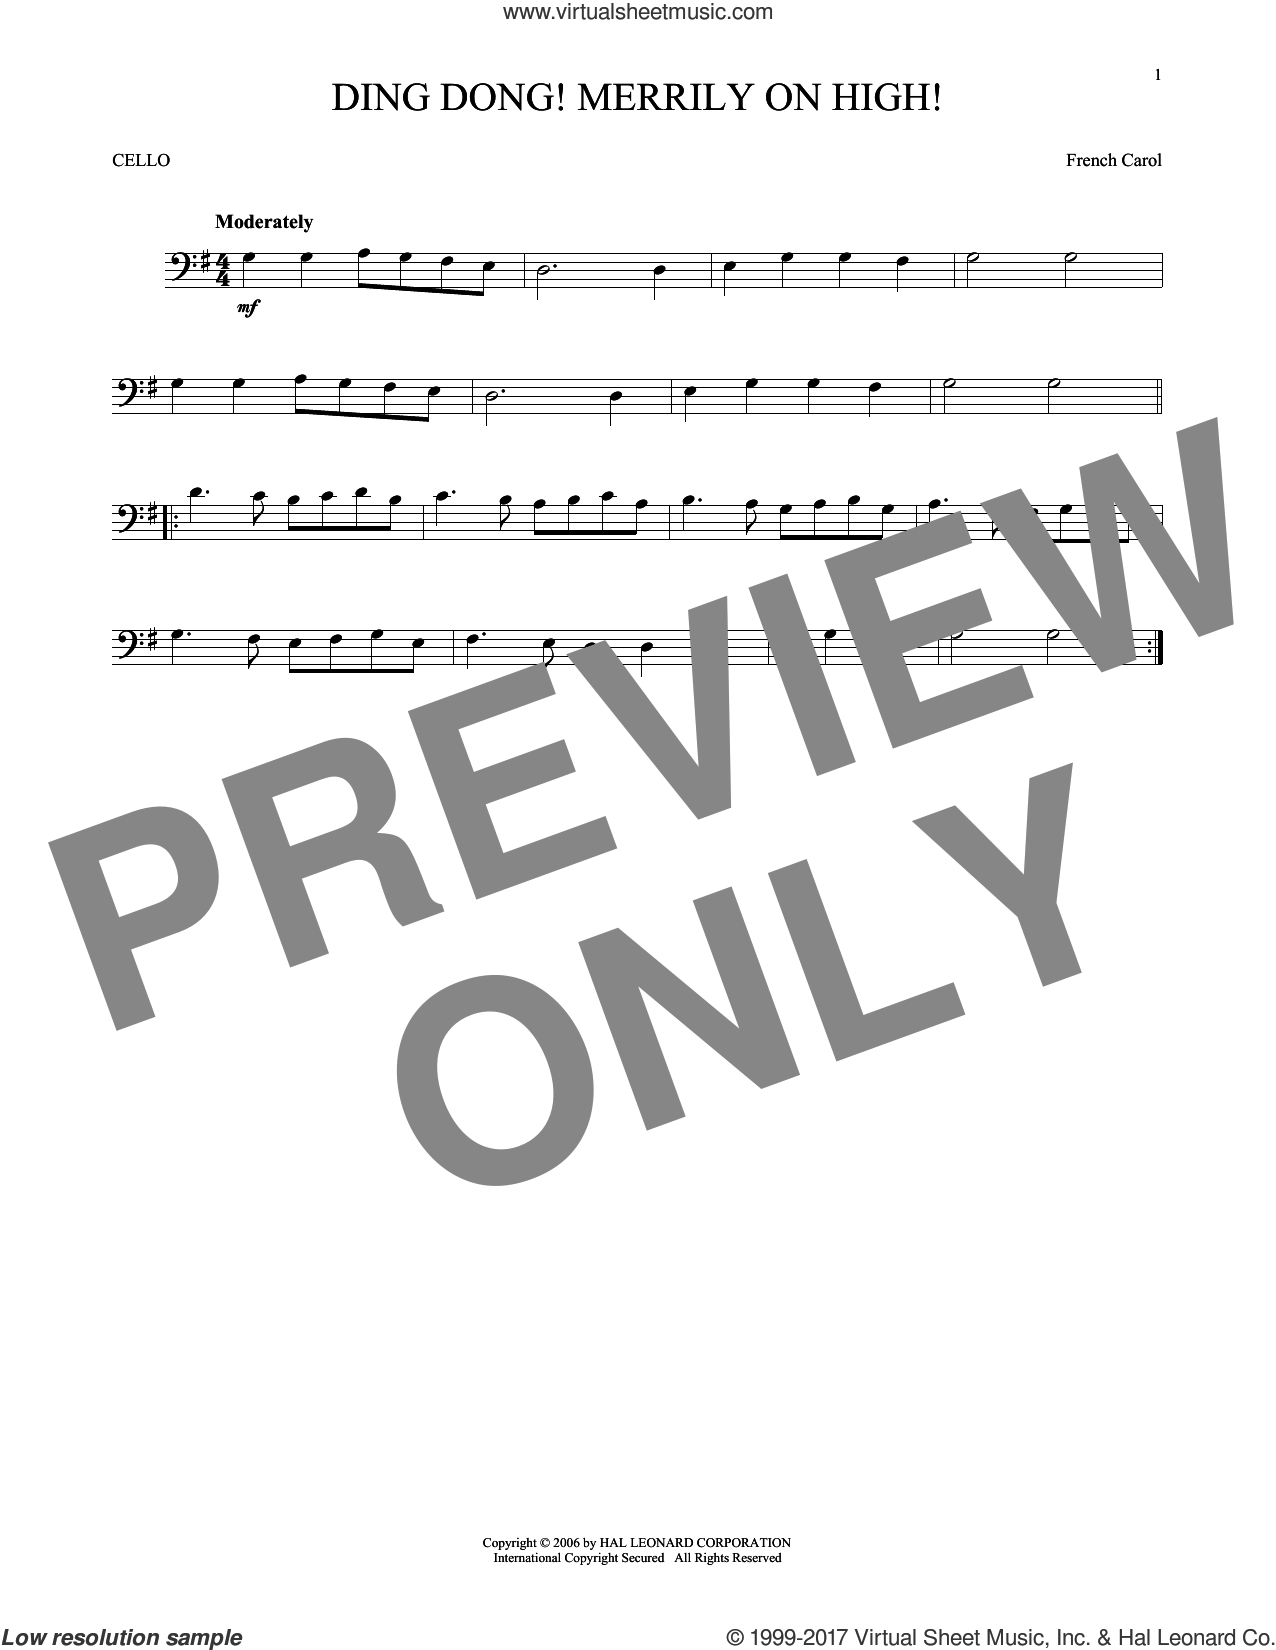 Ding Dong! Merrily On High! sheet music for cello solo, intermediate skill level